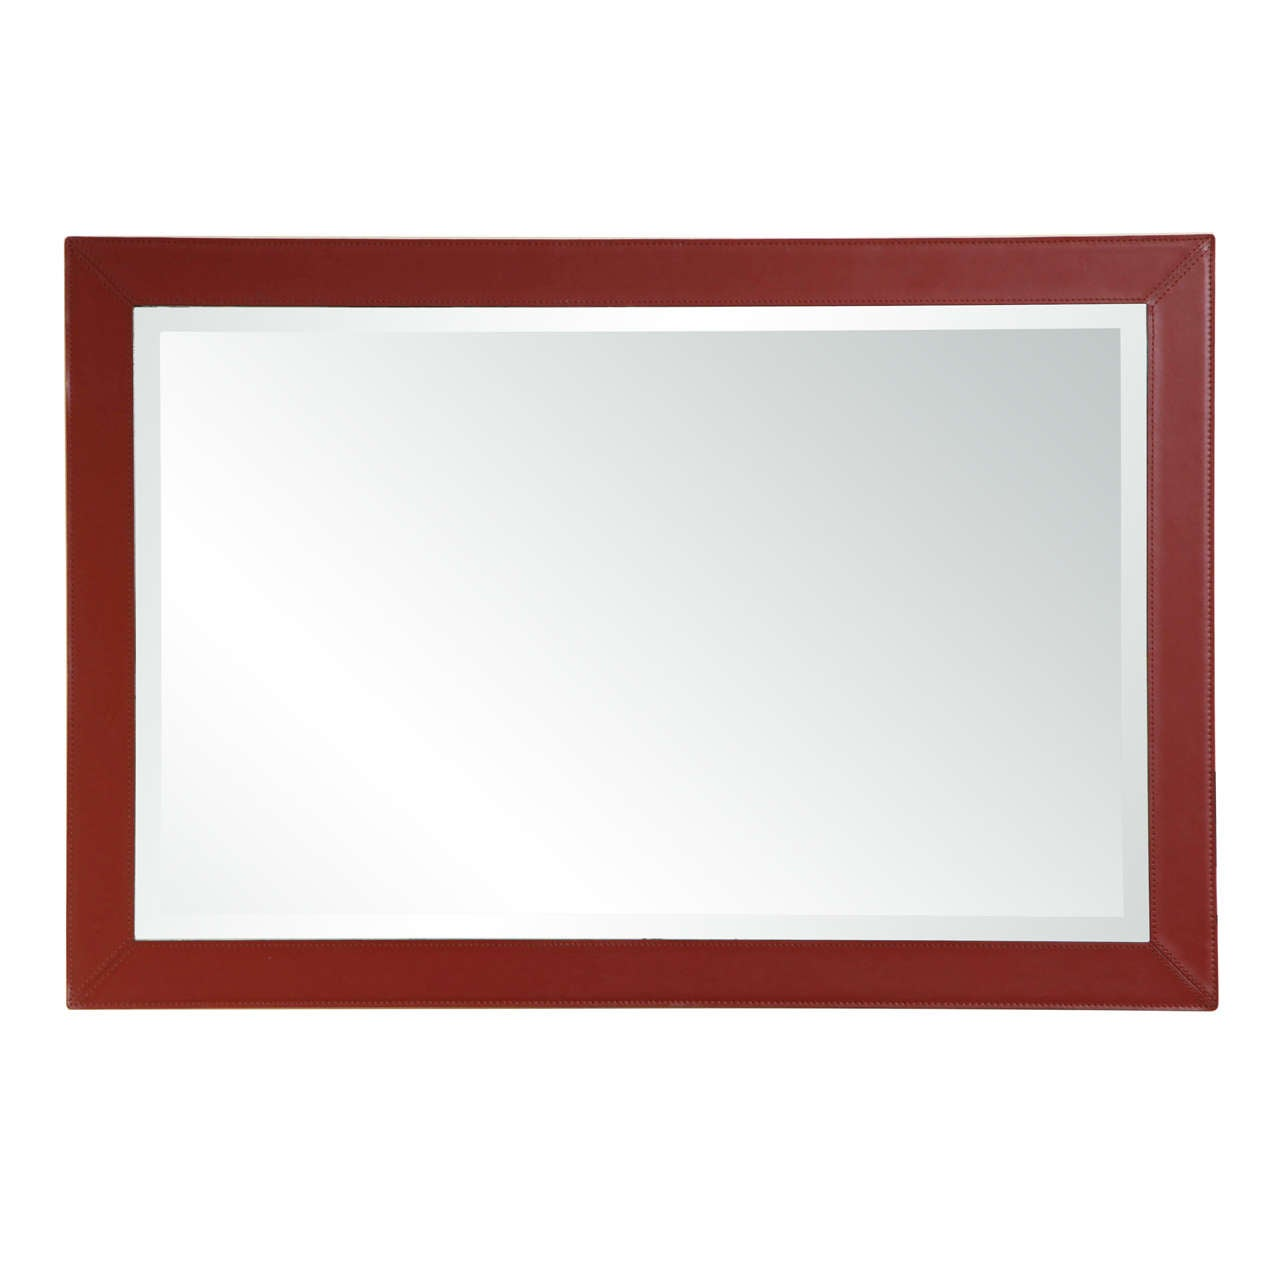 Saddle stitched stylish leather framed wall mirror at 1stdibs saddle stitched stylish leather framed wall mirror 1 amipublicfo Gallery